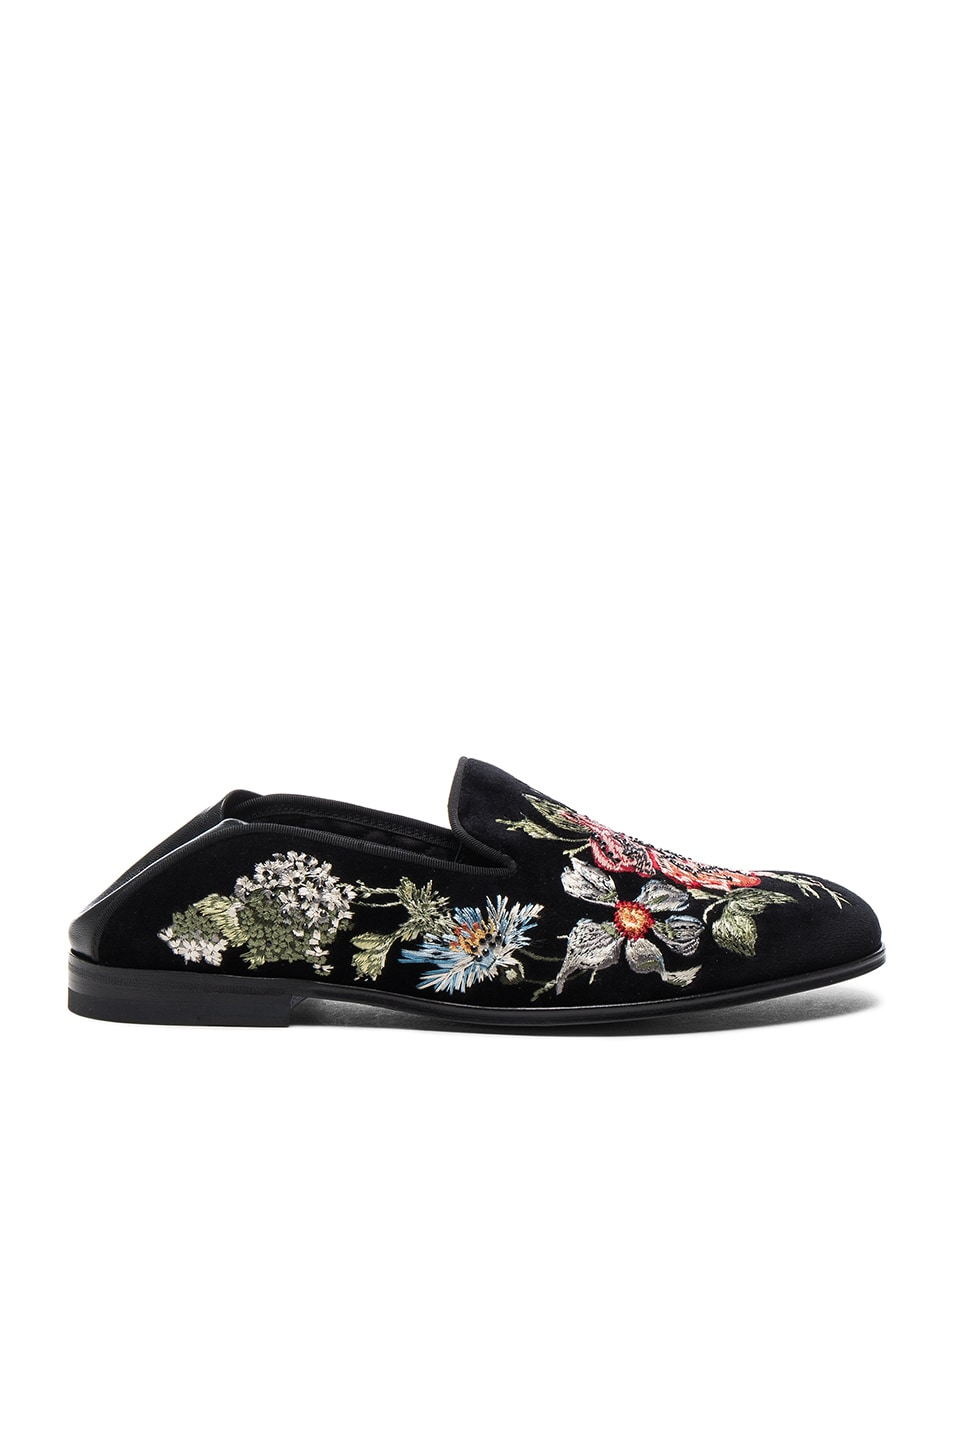 Alexander McQueen Embroidered Velvet Loafers